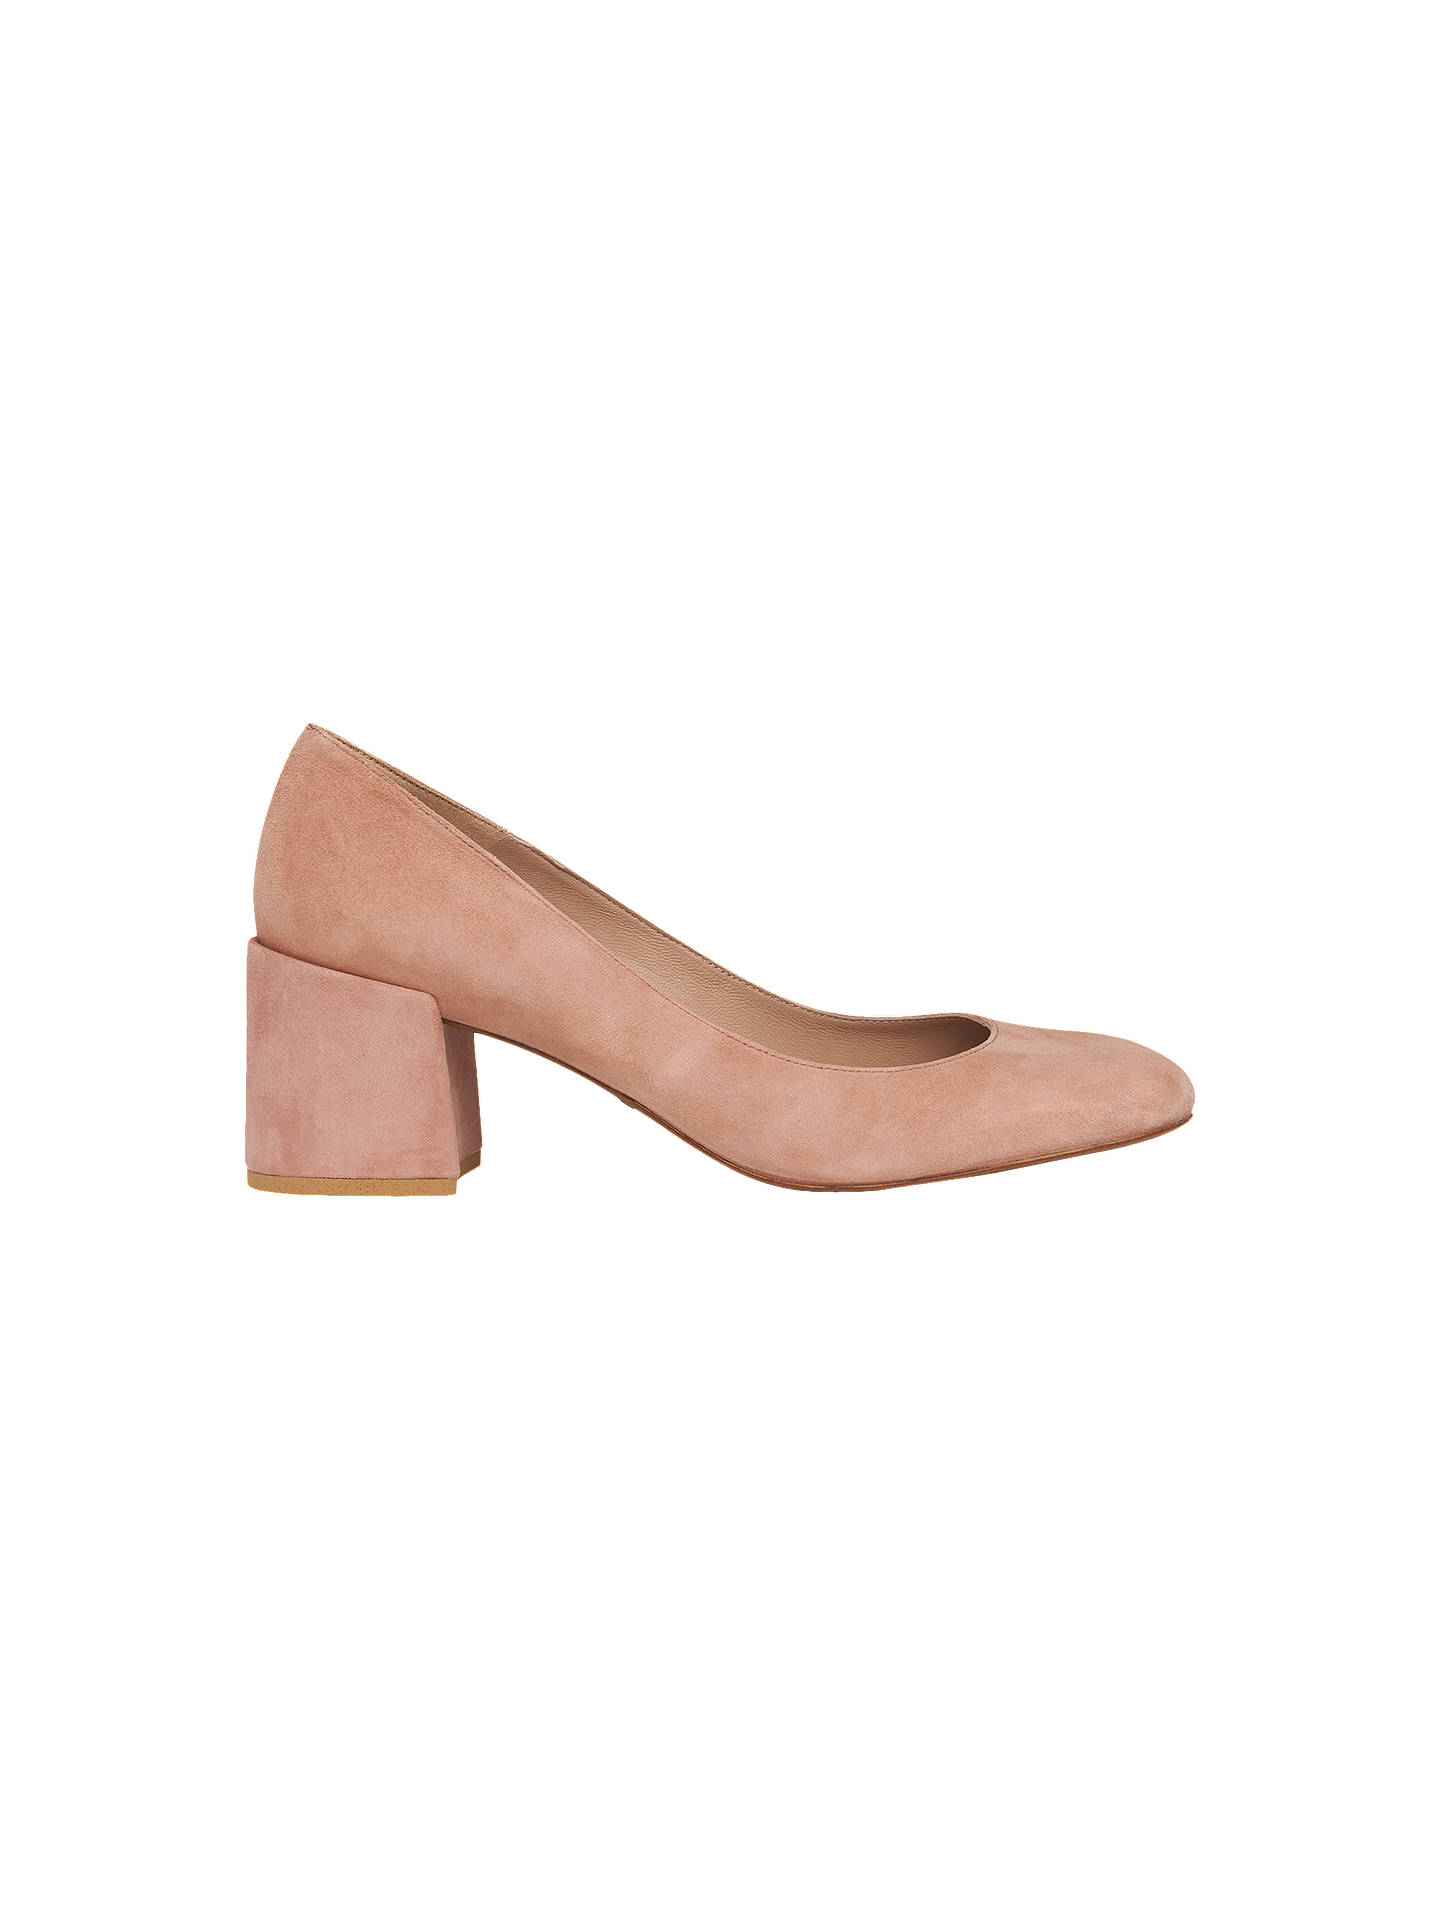 633750a6a35c Whistles Esther Block Heeled Court Shoes at John Lewis   Partners